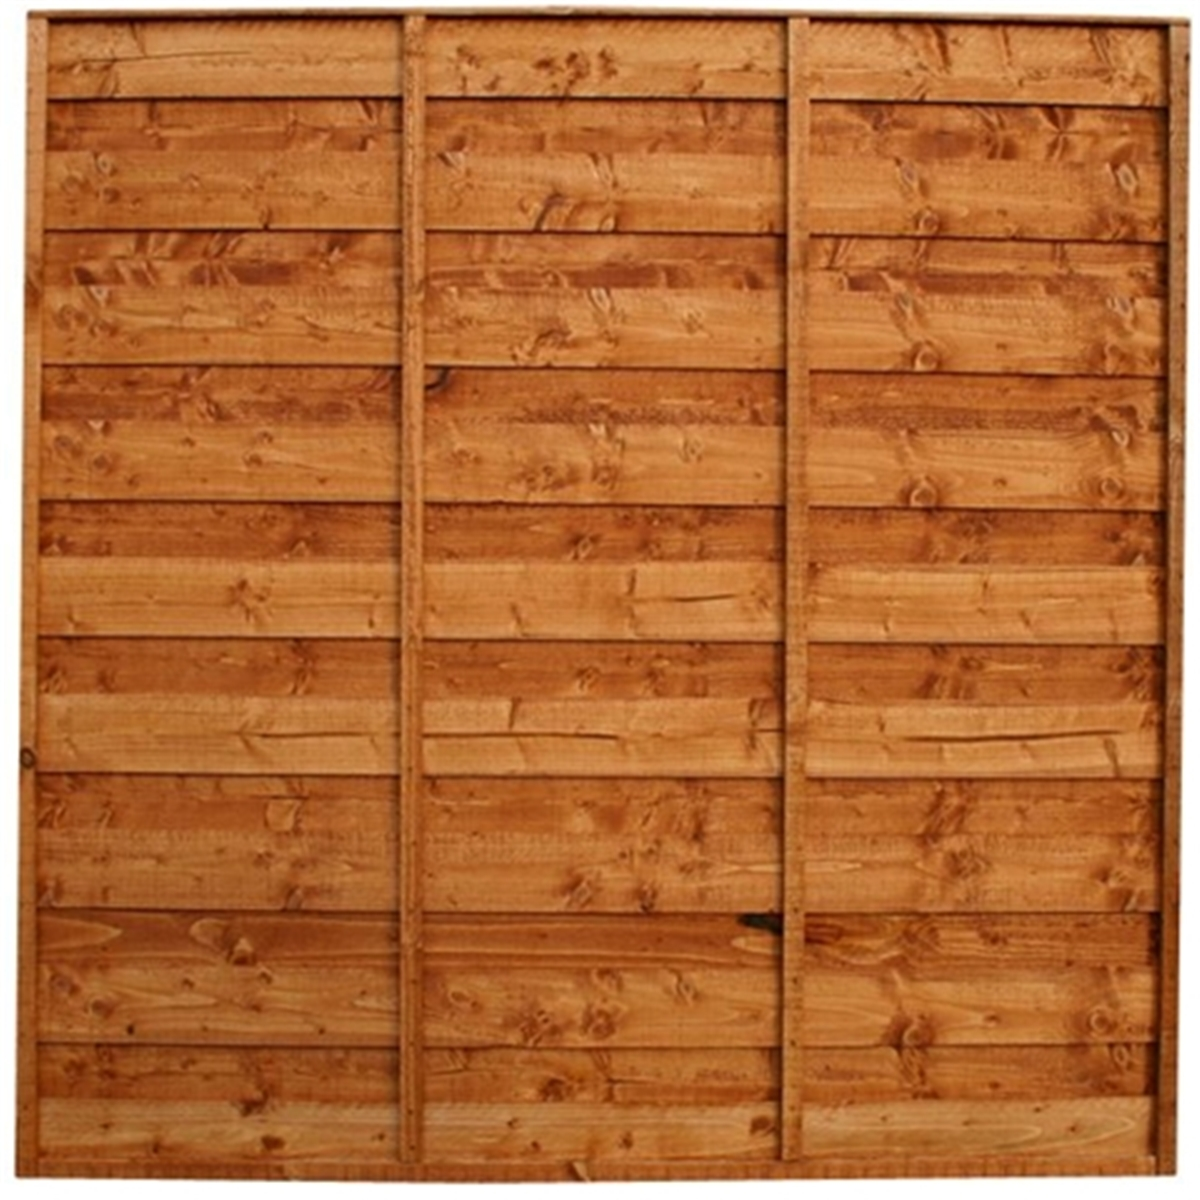 Wood fence panels 6 x 8 kashiori wooden sofa chair bookshelves superb img of 4ft x 6ft overlap fence panel fence panels overlap fence panel with baanklon Image collections